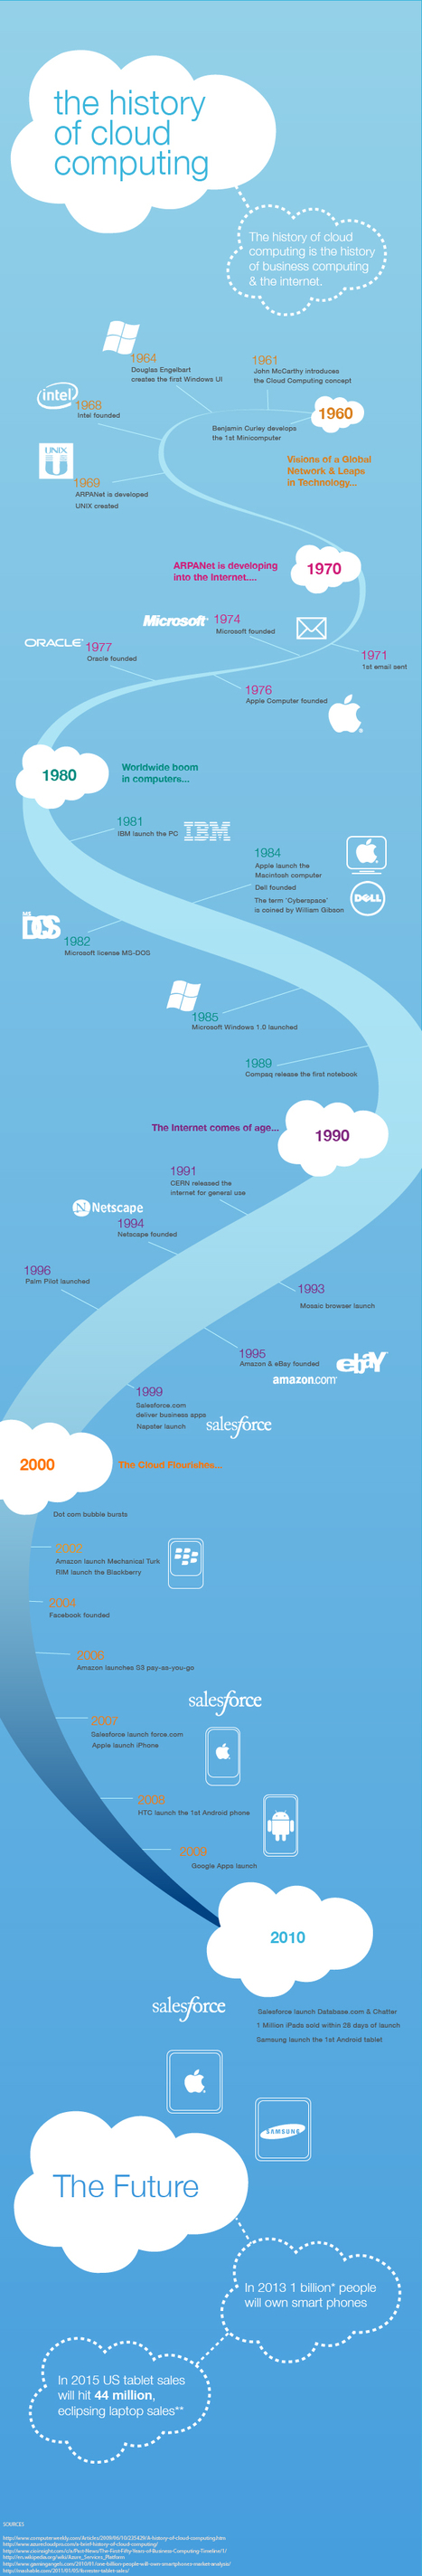 The History of Cloud Computing [INFOGRAPHIC] | CloudTweaks | Social media and education | Scoop.it